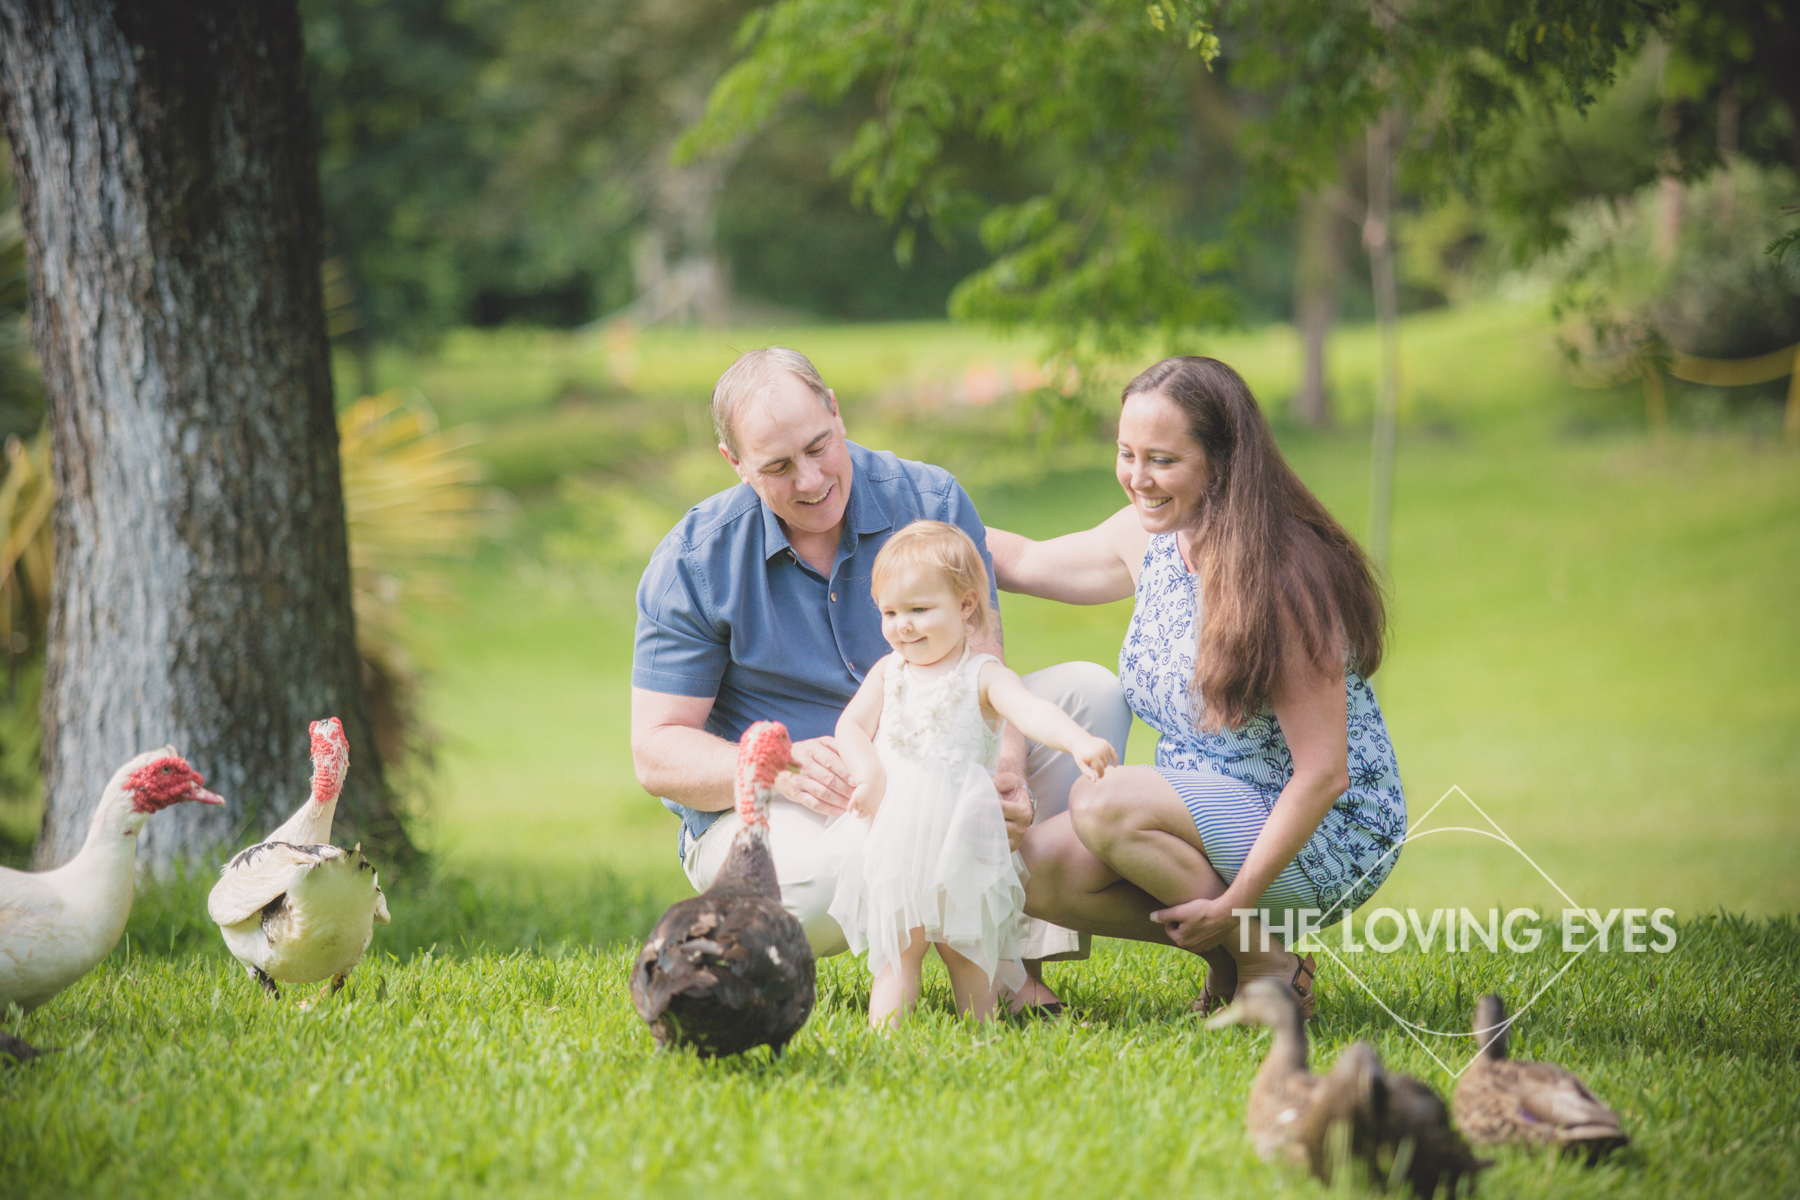 Family portrait during family vacation with ducks and geese at Hoʻomaluhia Botanical Gardens